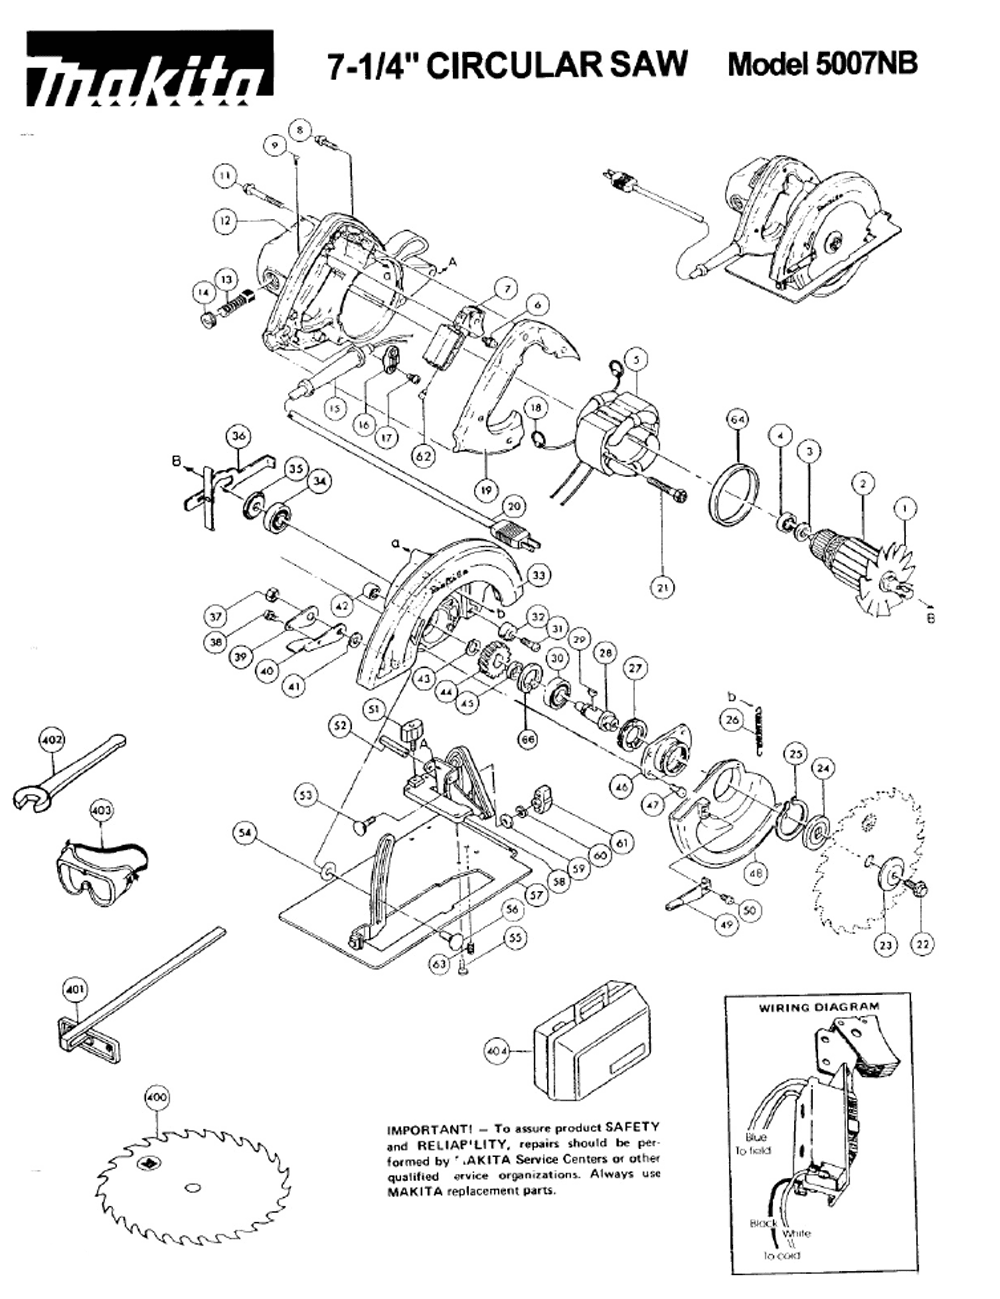 Makita 5007nb Parts List And Diagram Ereplacementpartscom | #1 ... on